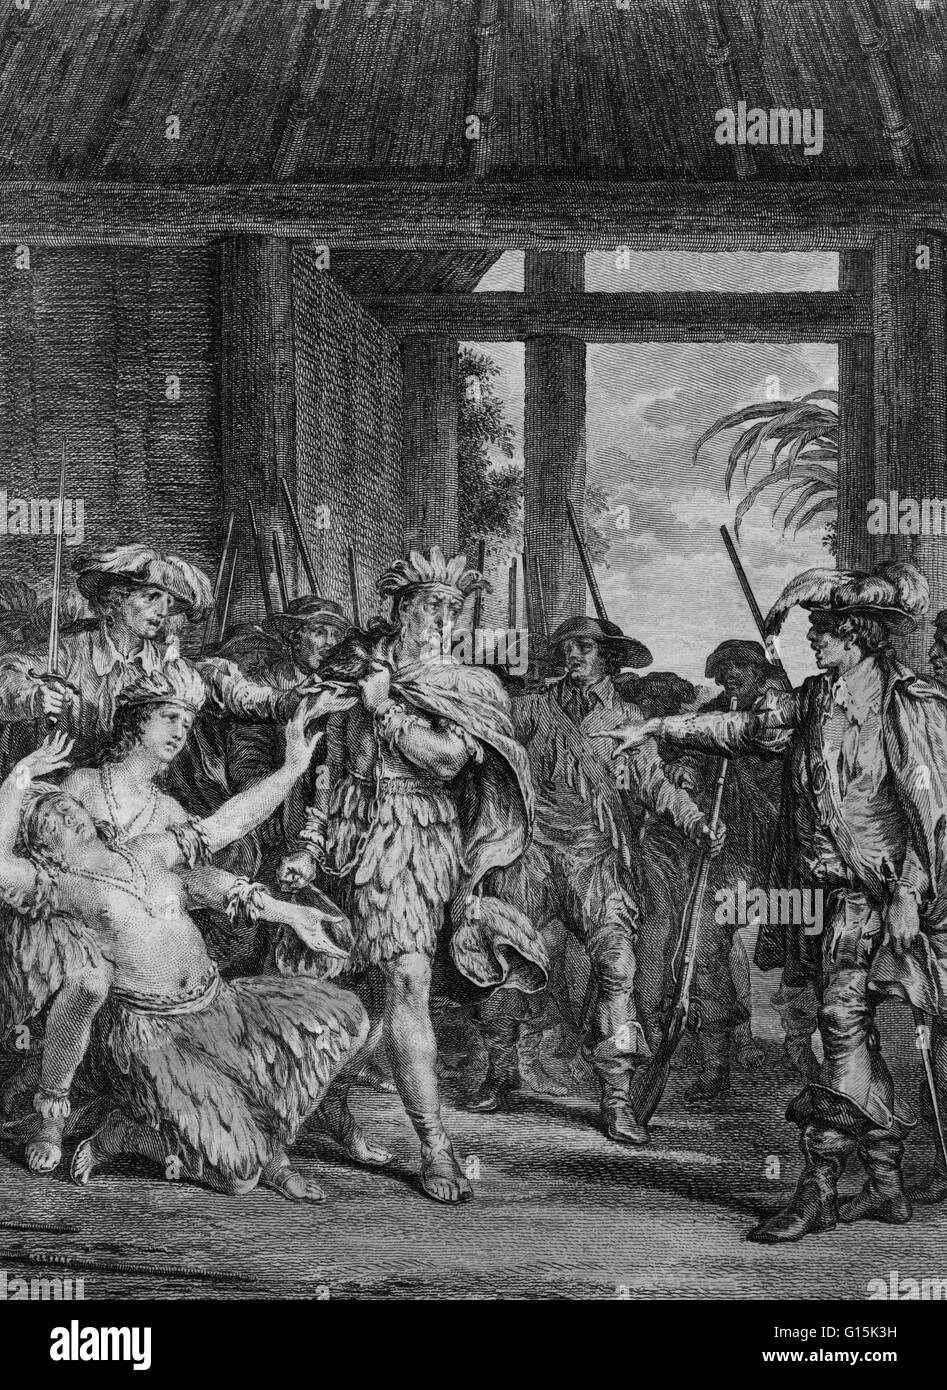 Engraving depicting seizure of Atahualpa, who was the last sovereign emperor of the the Inca Empire. The Spanish - Stock Image